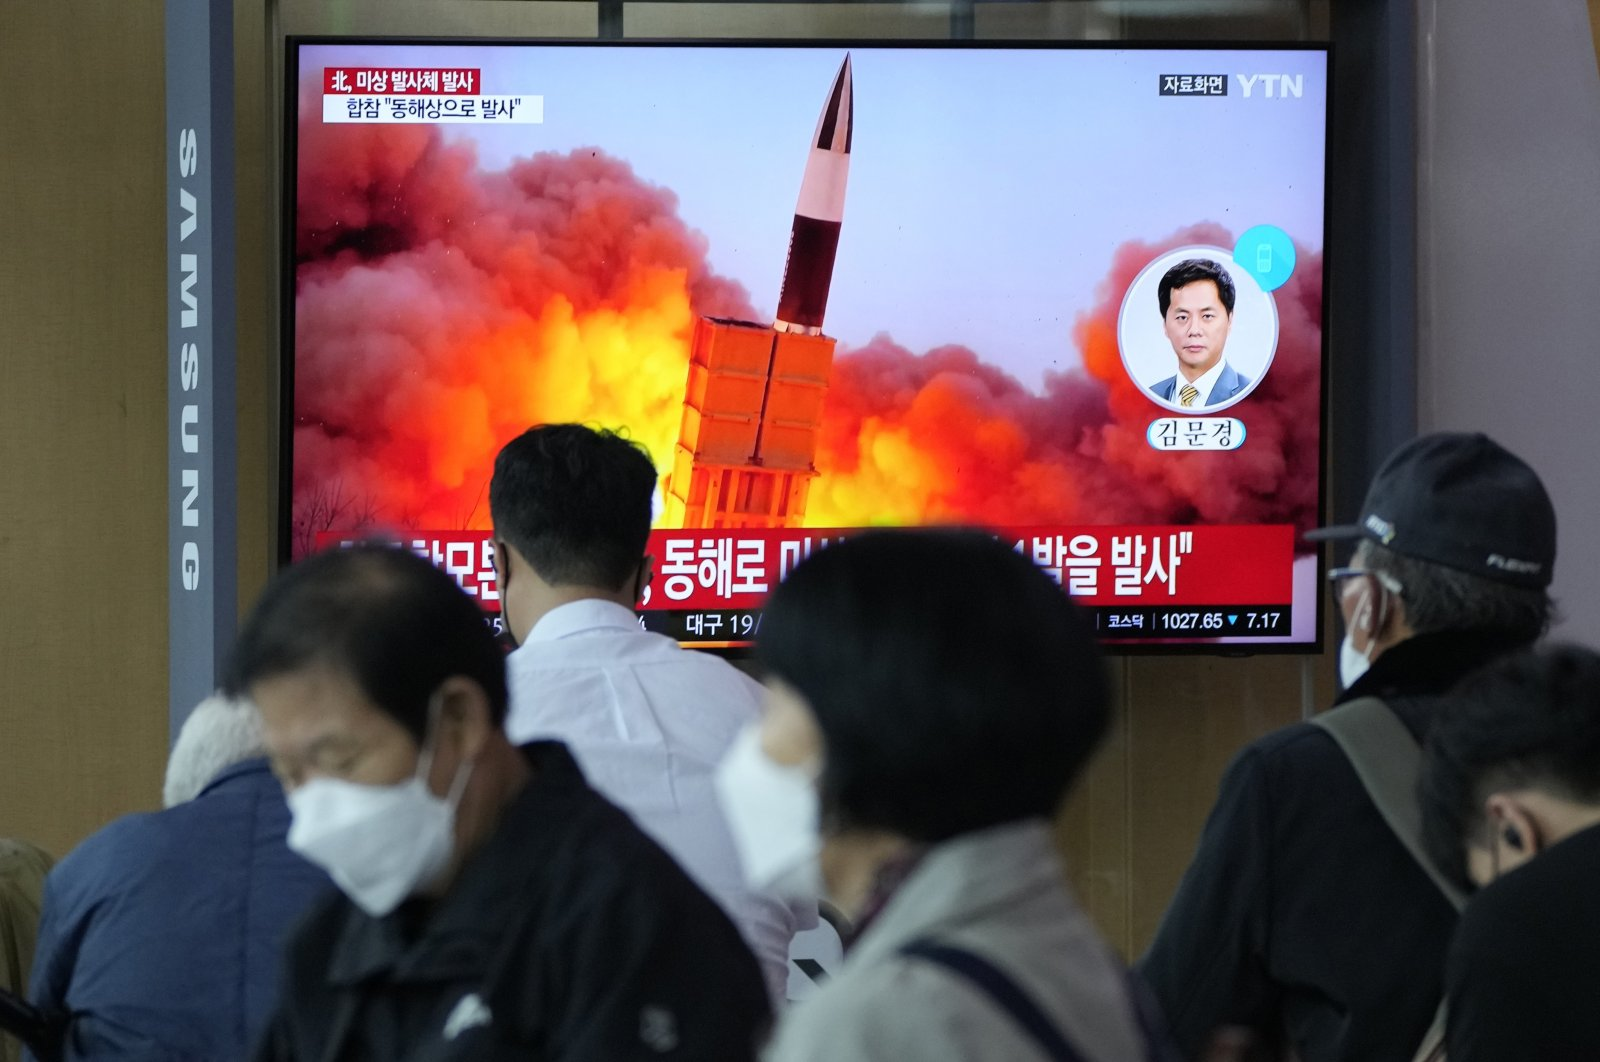 People watch a TV showing a file image of North Korea's missile launch during a news program at the Seoul Railway Station in Seoul, South Korea, Sept. 28, 2021. (AP Photo)